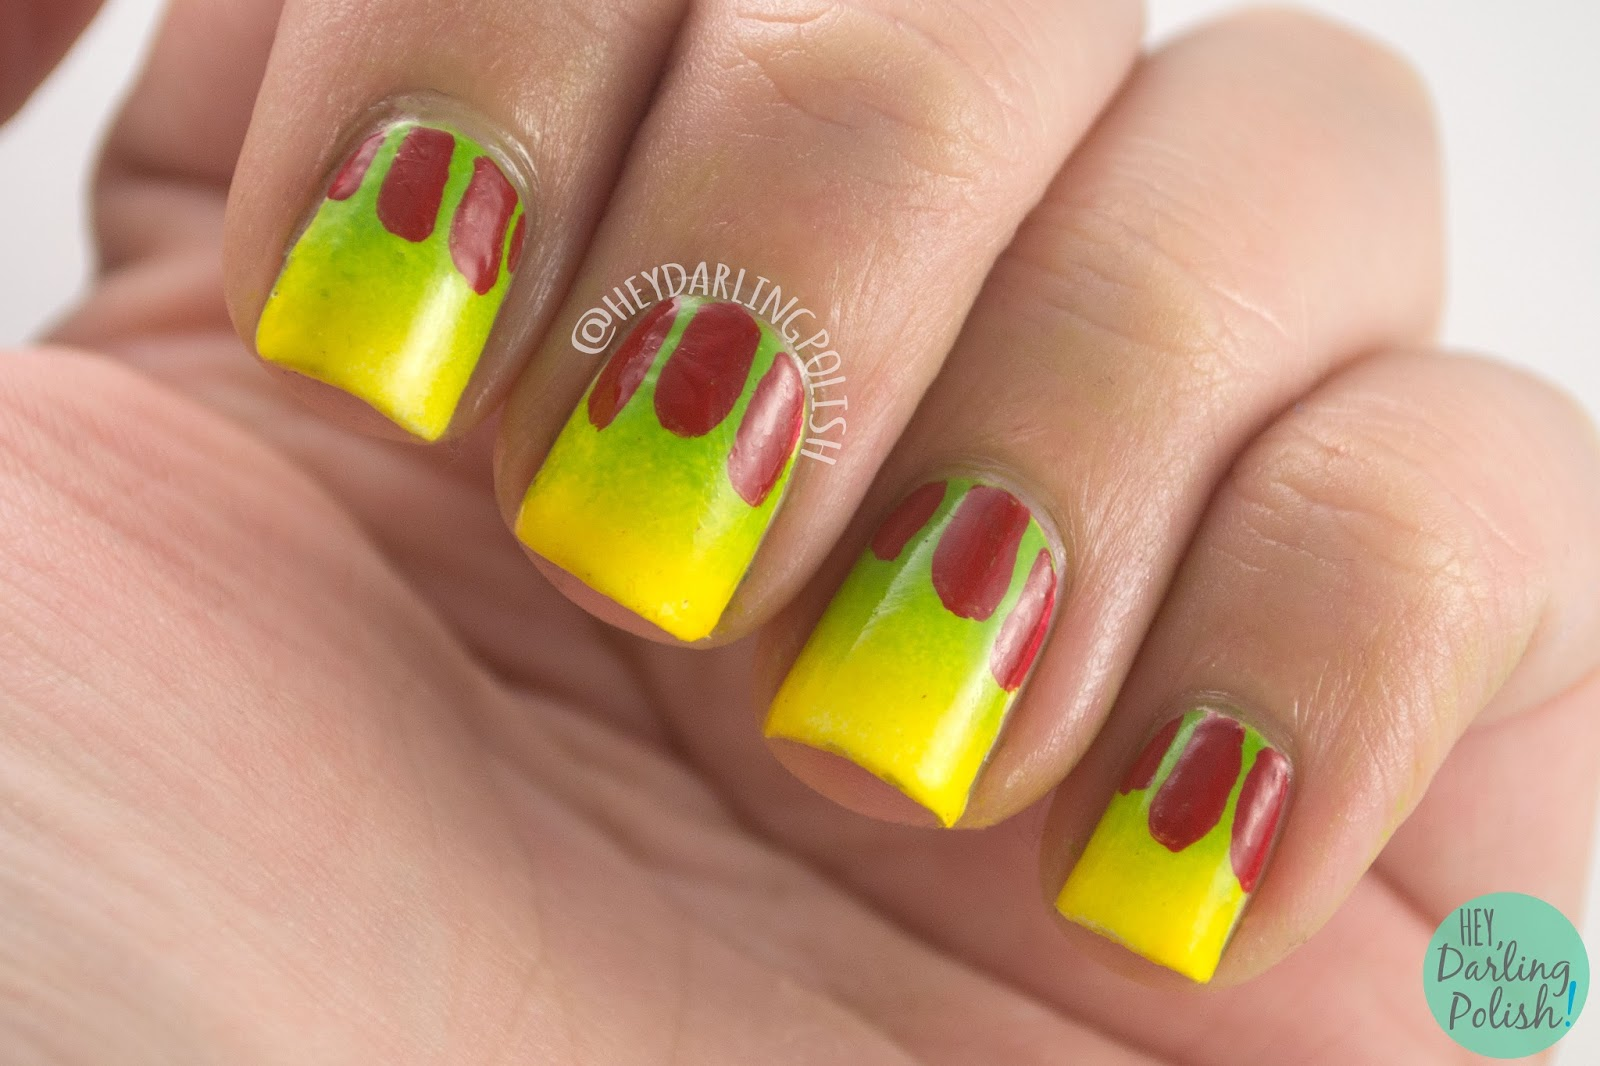 nails, nail art, nail polish, jurassic park, hey darling polish, gradient, green, yellow, 31 day challenge, 31dc2014